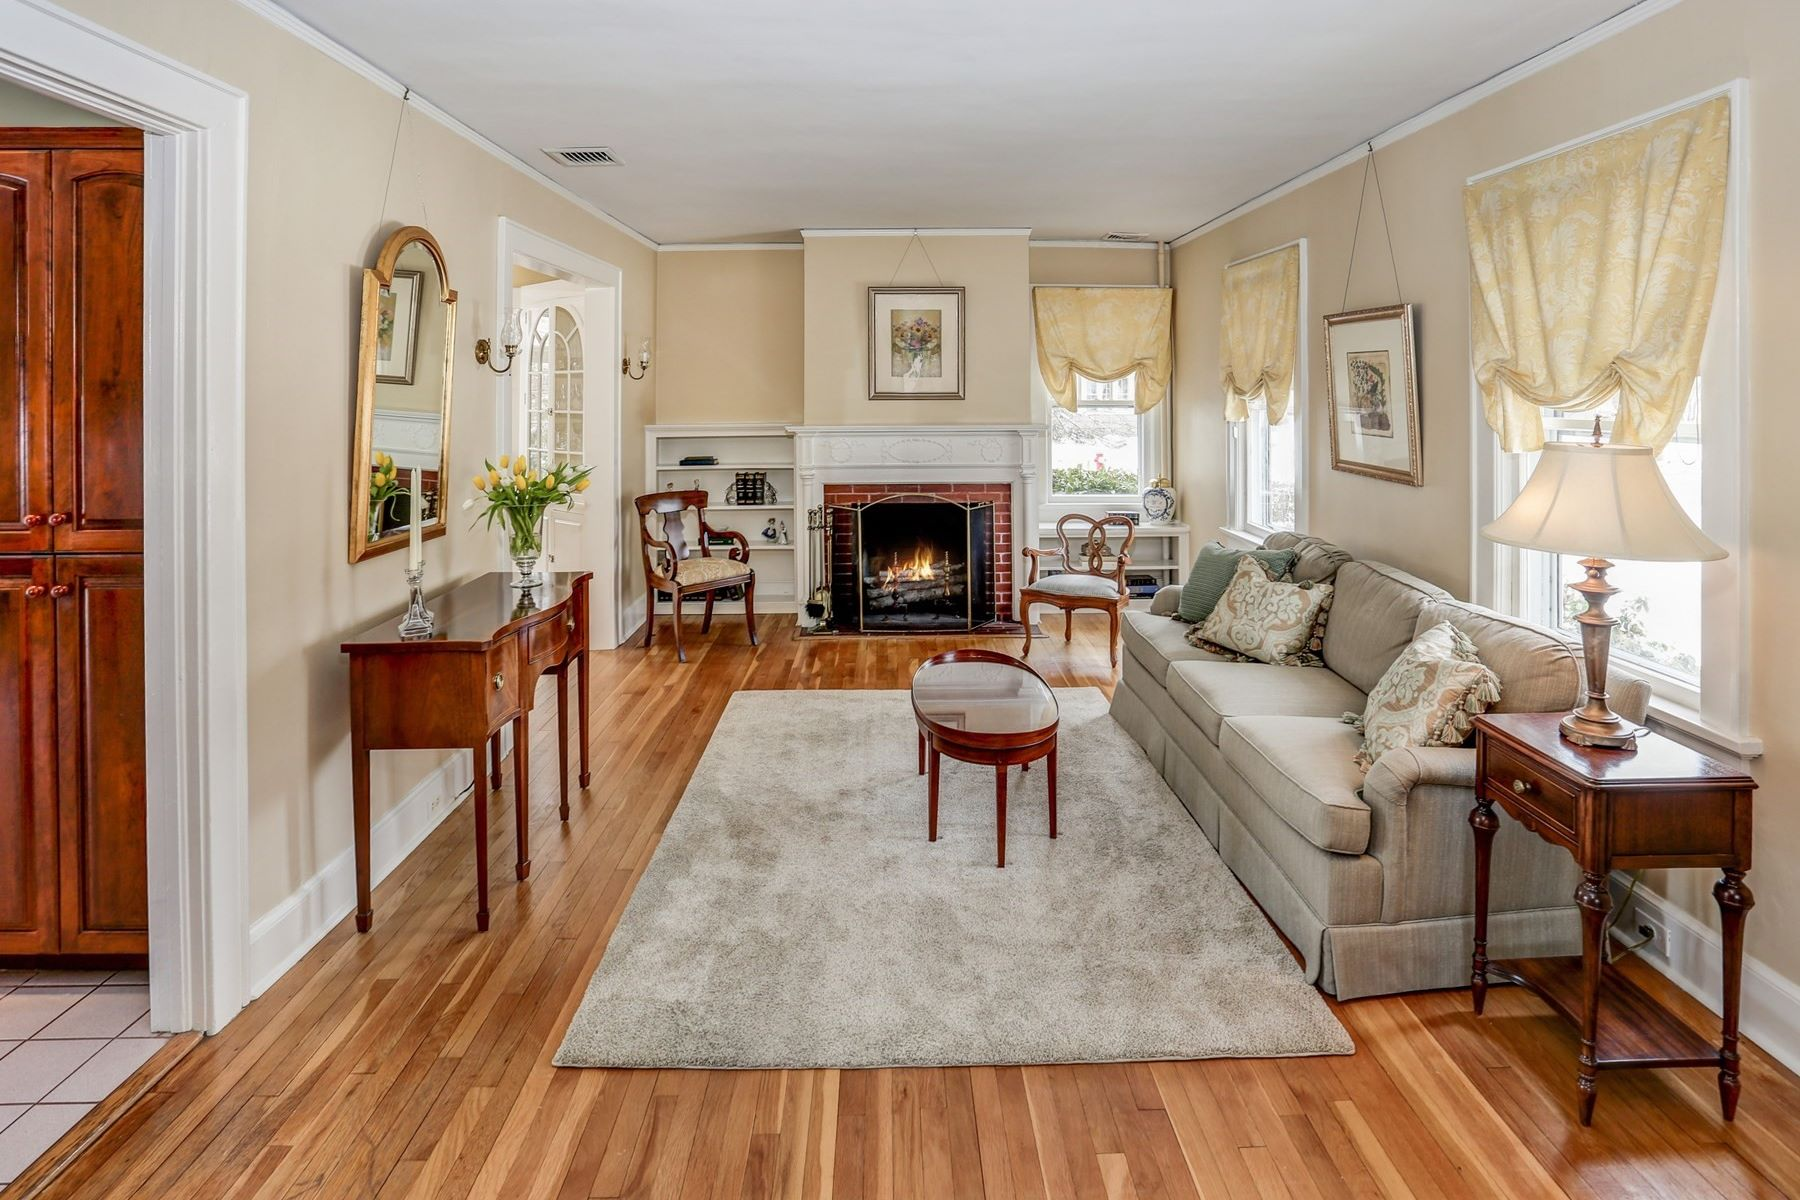 Additional photo for property listing at Charming Colonial 10 Farrelly Place Morristown, New Jersey 07960 United States